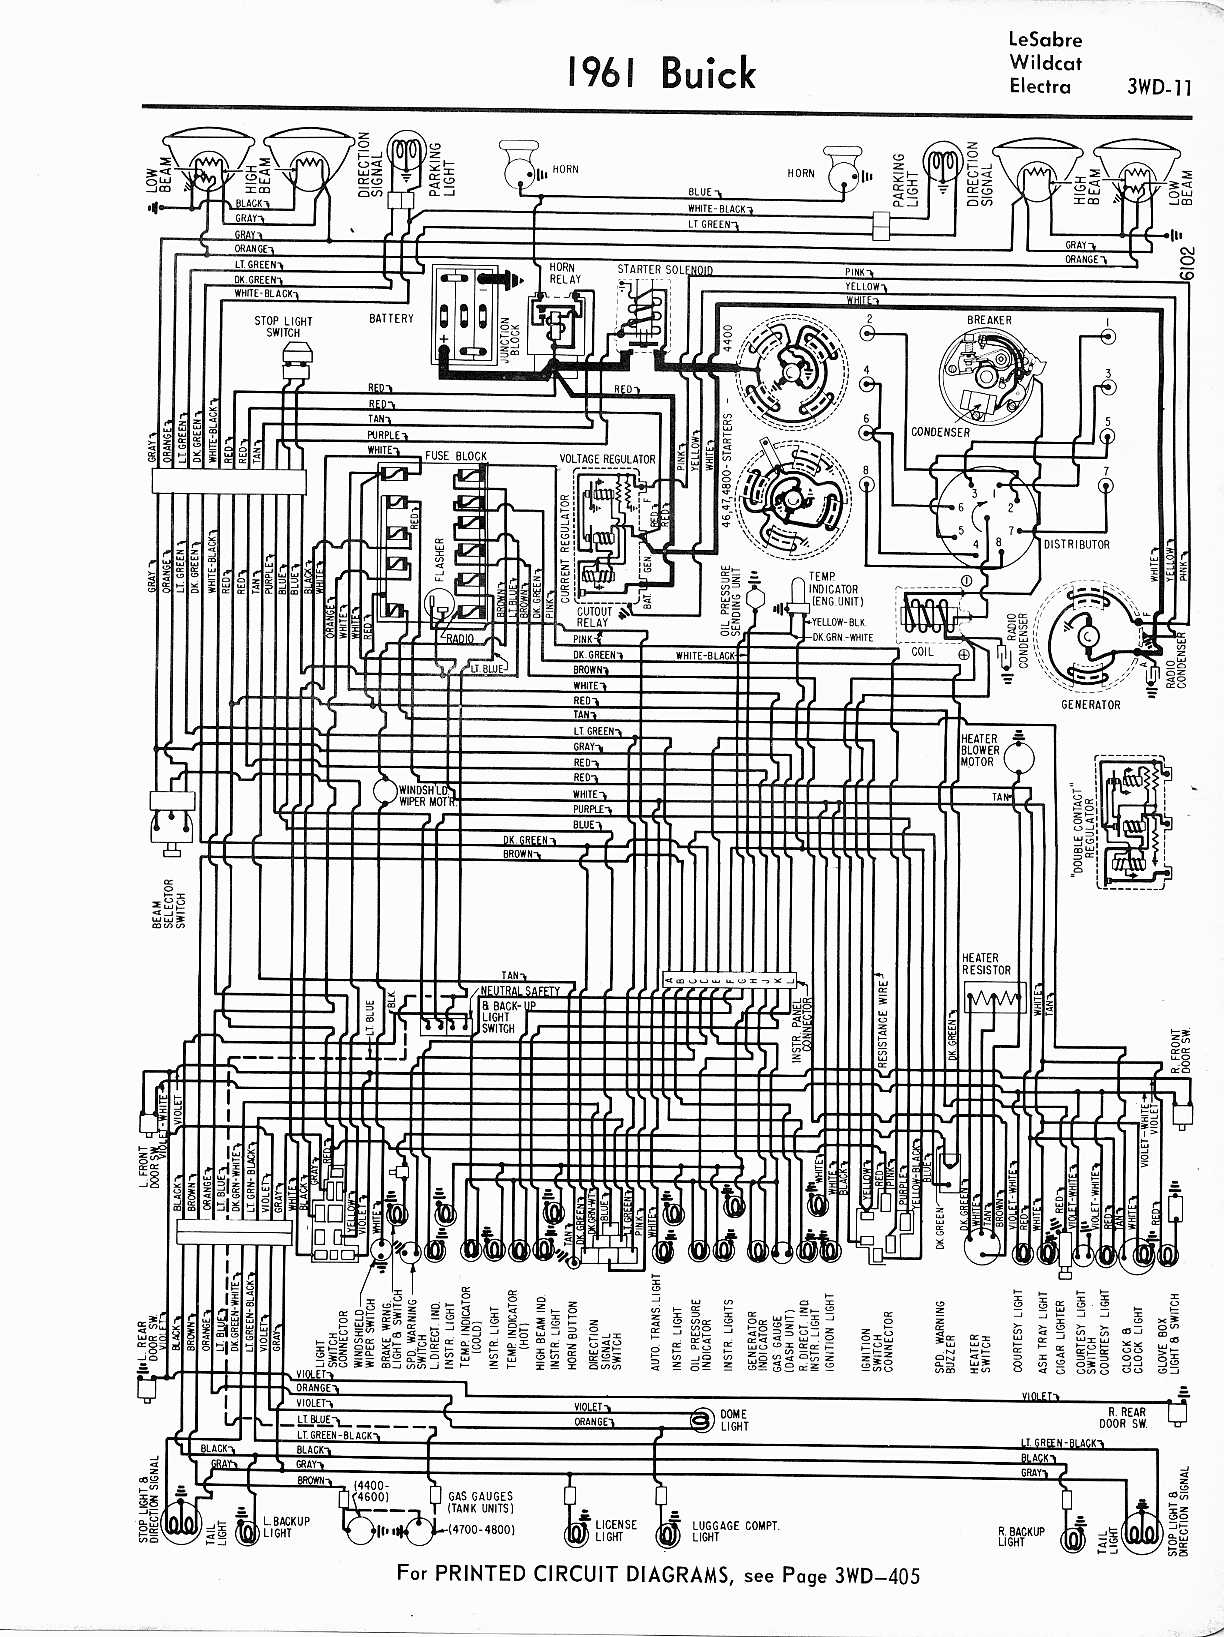 Buick Steering Column Wiring Diagram Schematics Diagrams 1969 Schematic Lesabre Wire Center U2022 Rh 207 246 123 107 1989 Gmc